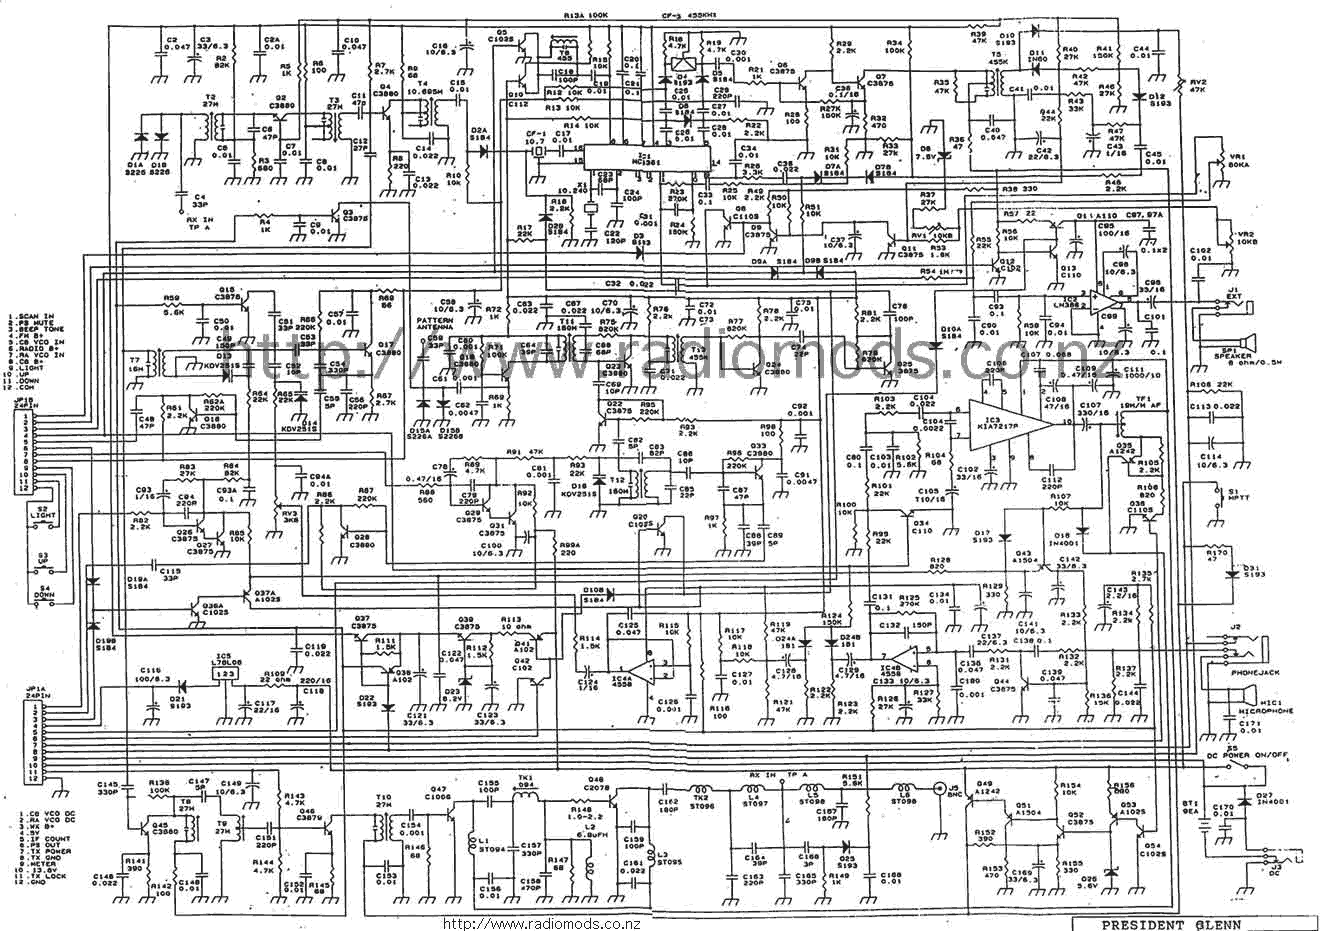 Cb Circuit Schematics Diy Enthusiasts Wiring Diagrams 27mhz Receiver The Defpom And Ham Diagram Page Rh Radiomods Co Nz Schematic Symbols